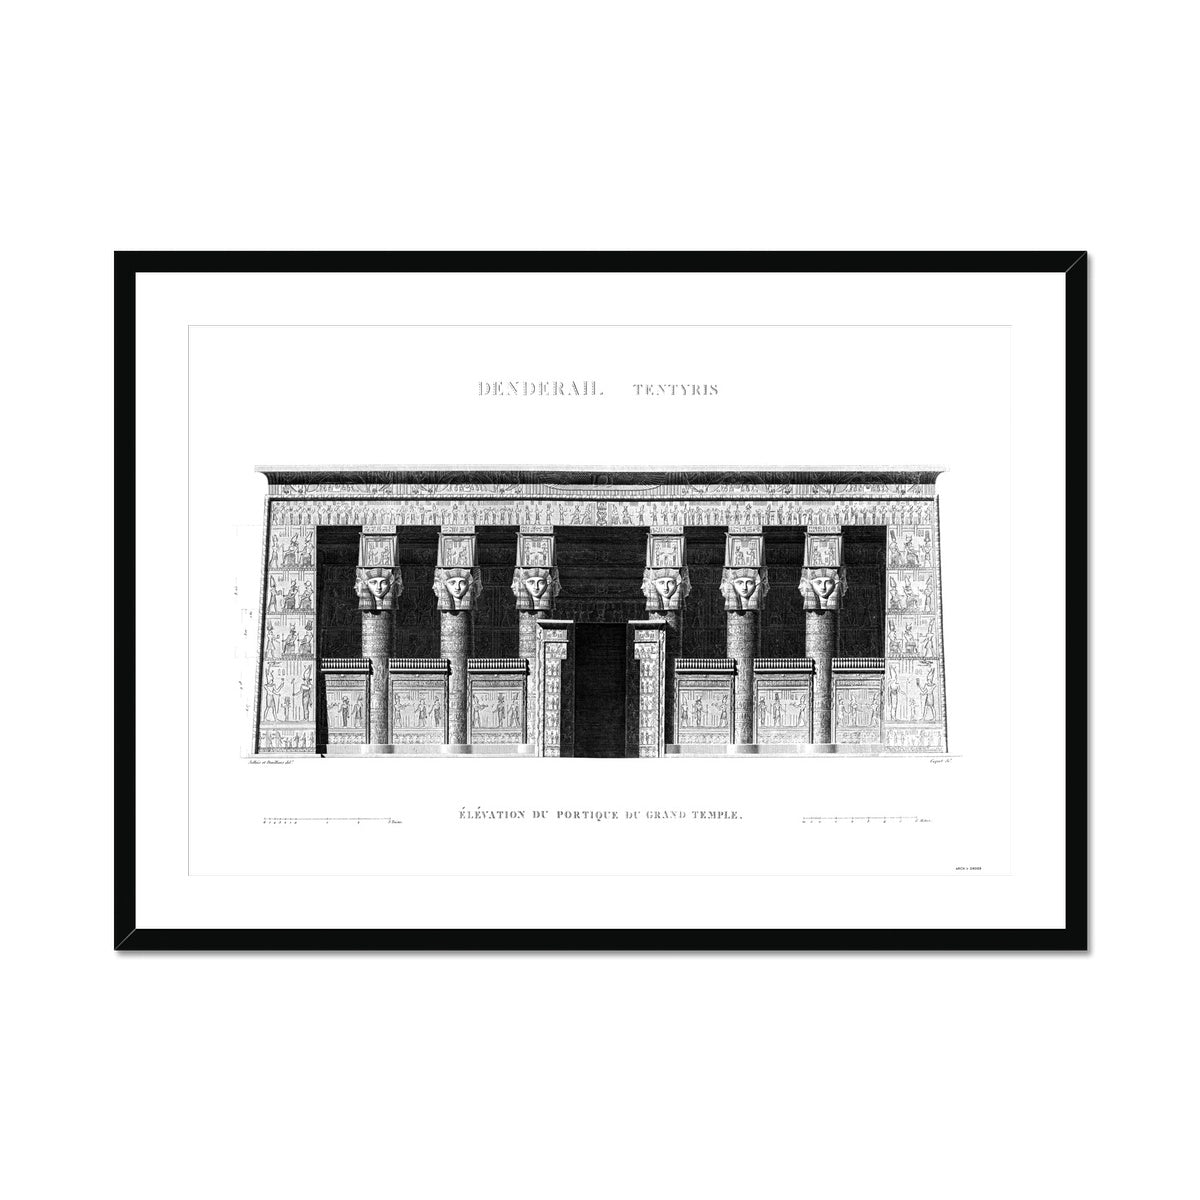 The Temple of Hathor Primary Elevation - Dendera Egypt -  Framed & Mounted Print